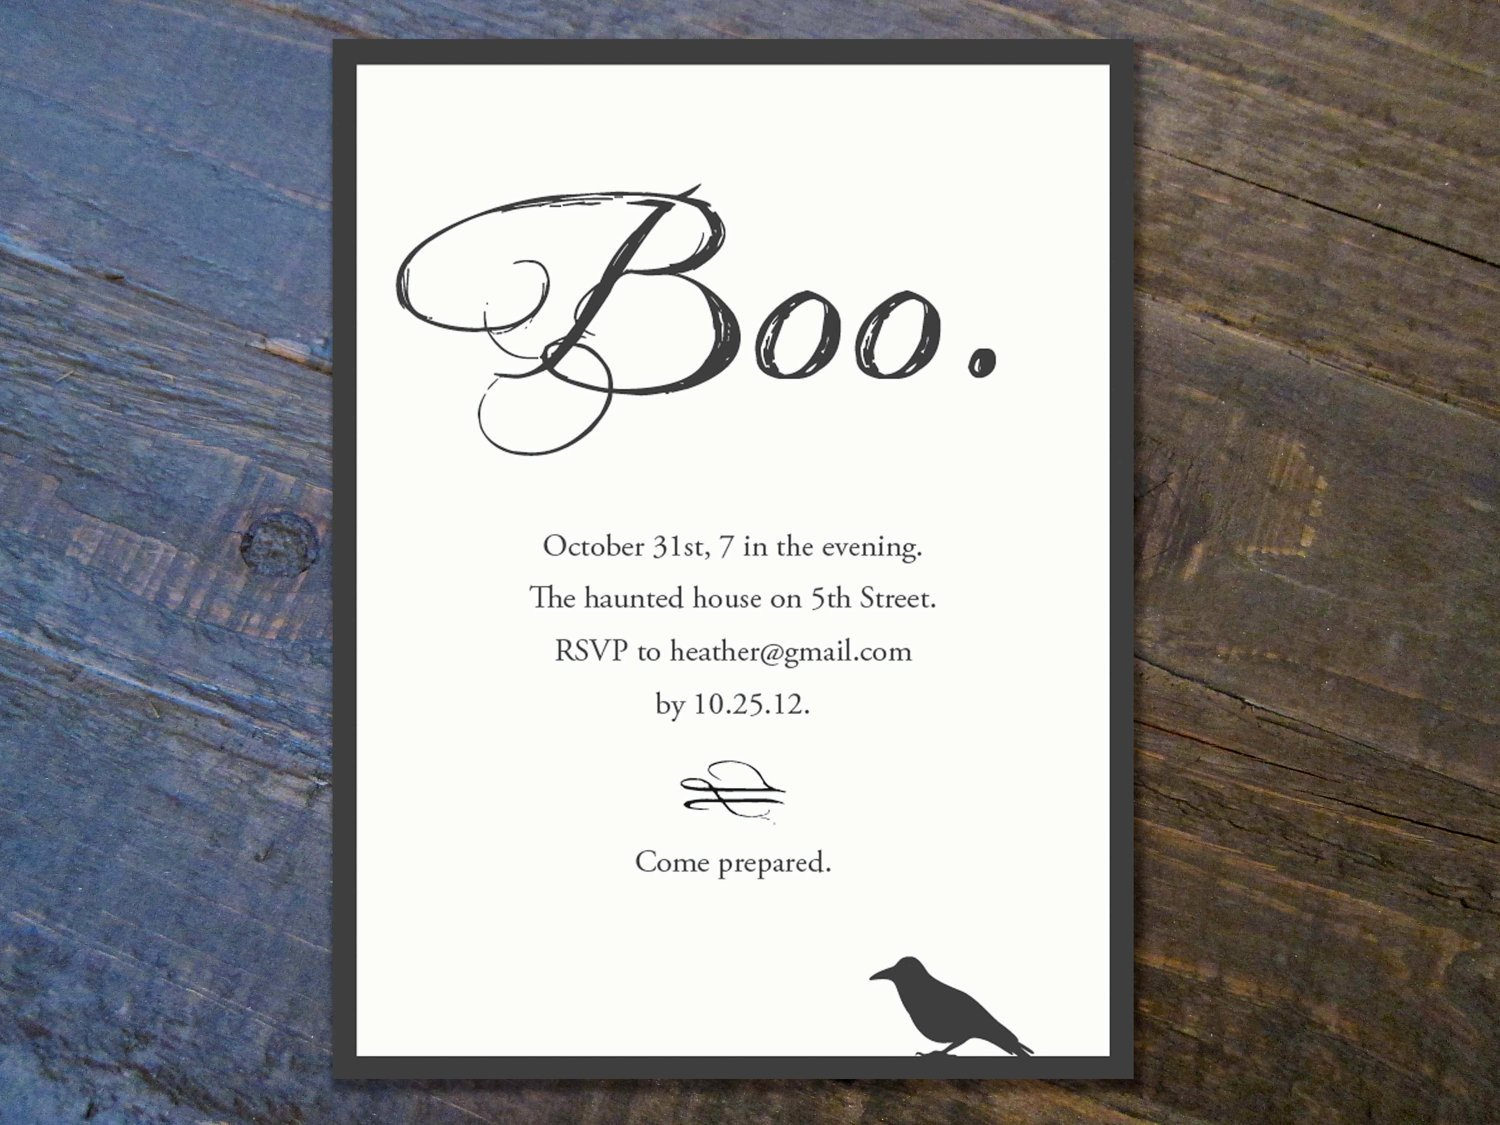 Free Halloween Invitation Templates Halloween Invitation Templates Free – Festival Collections